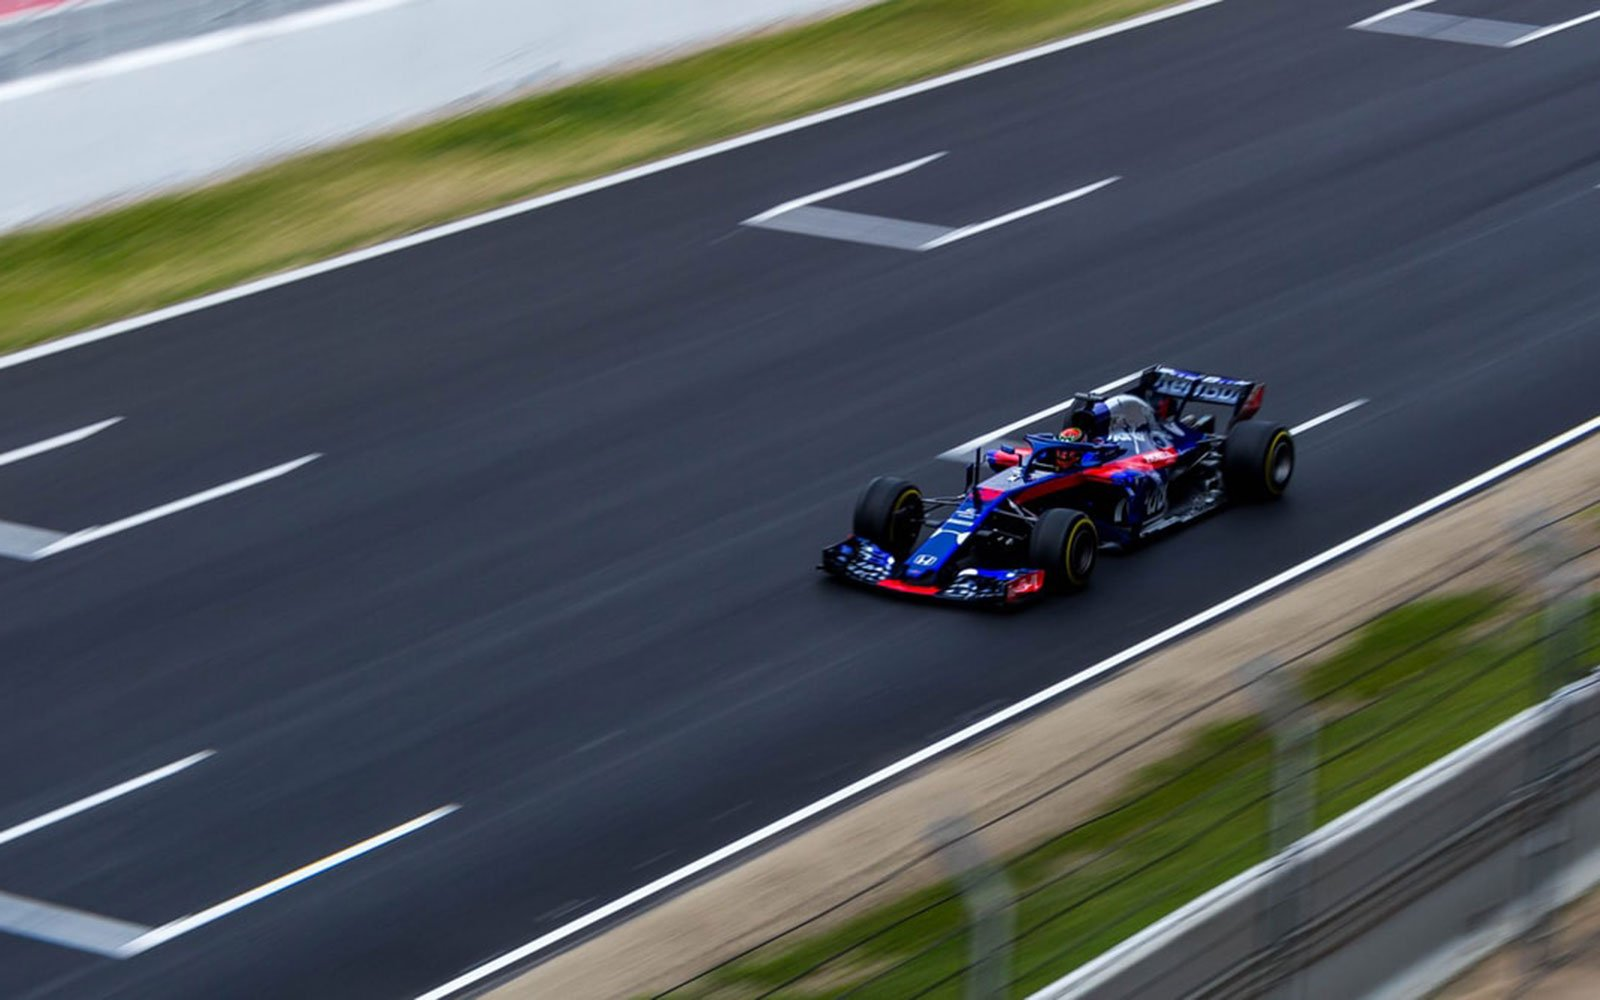 SaaS agreement with Formula 1 case study